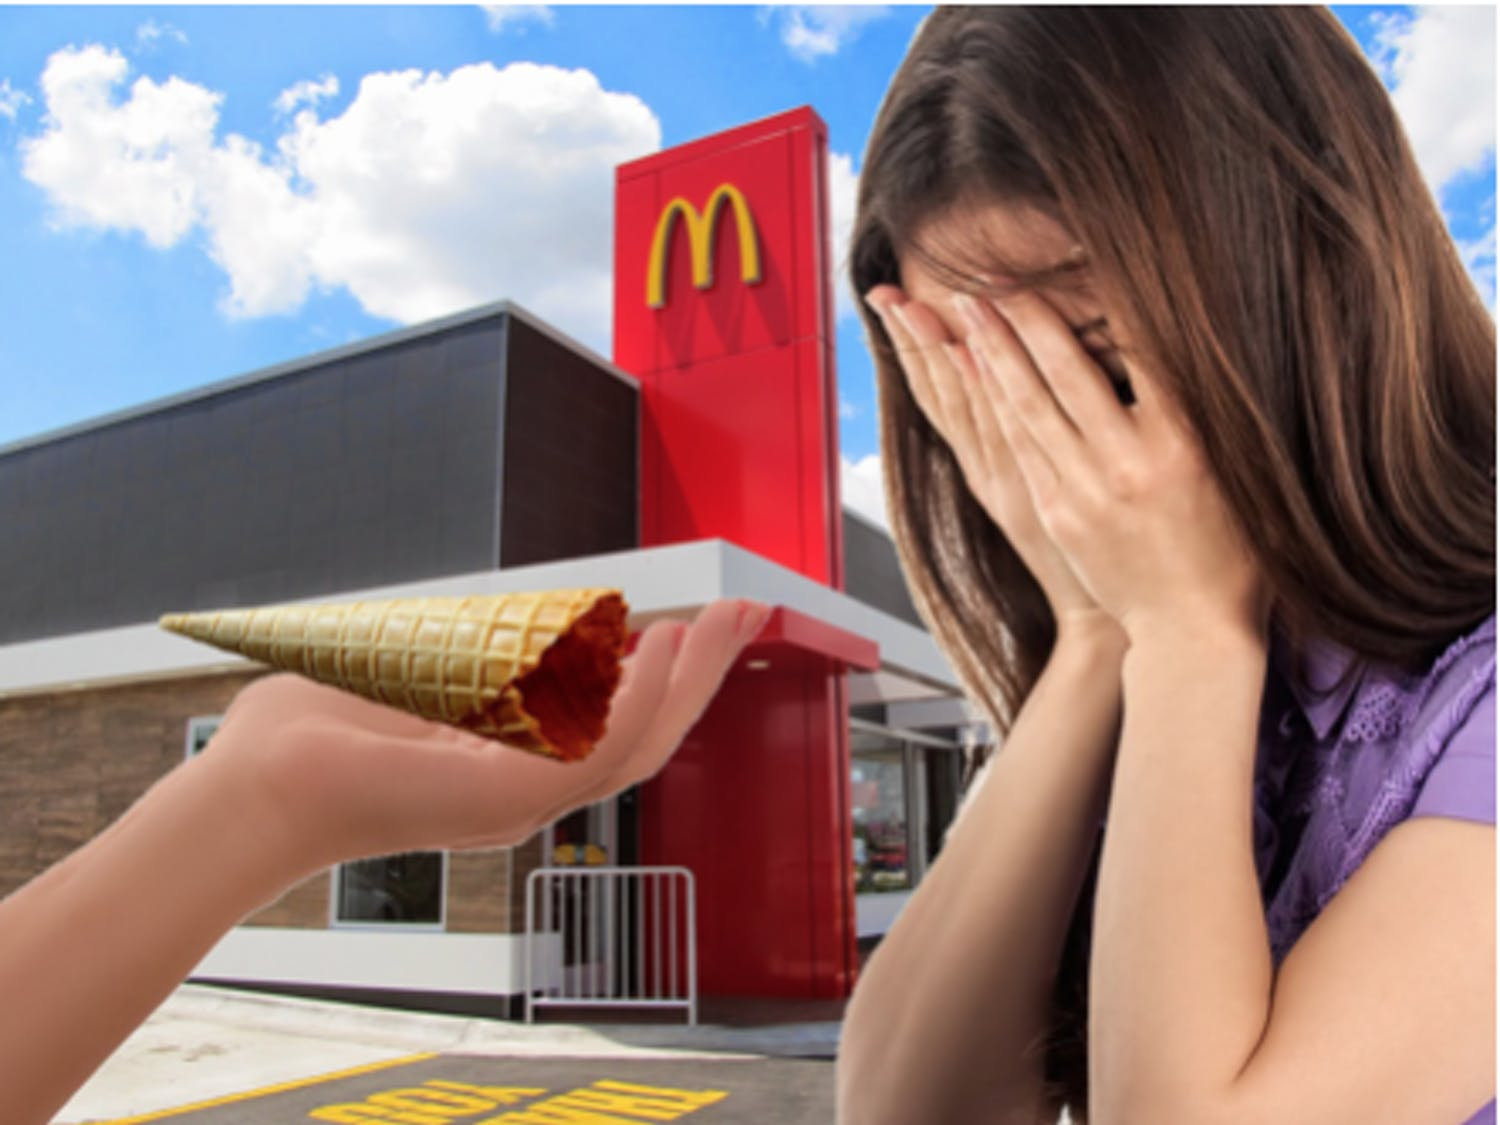 McDonald's worker hands a dismayed woman the portion of a vanilla cone they are equipped to produce.